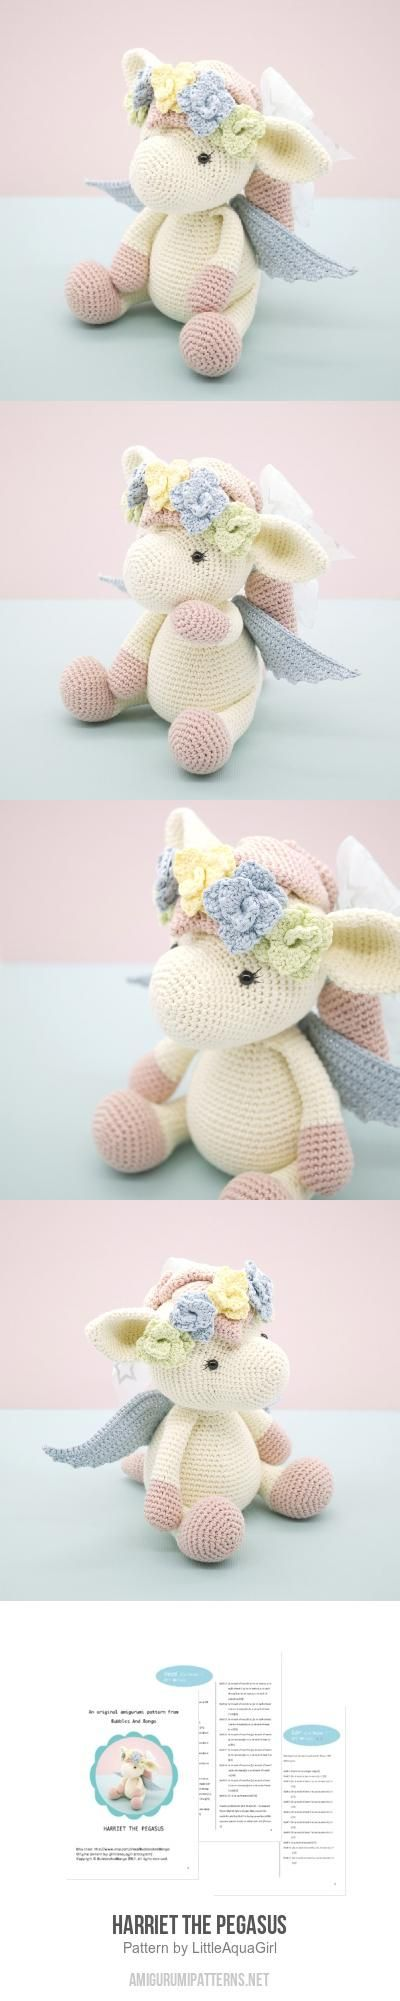 Harriet the Pegasus amigurumi pattern by LittleAquaGirl | Tejido ...